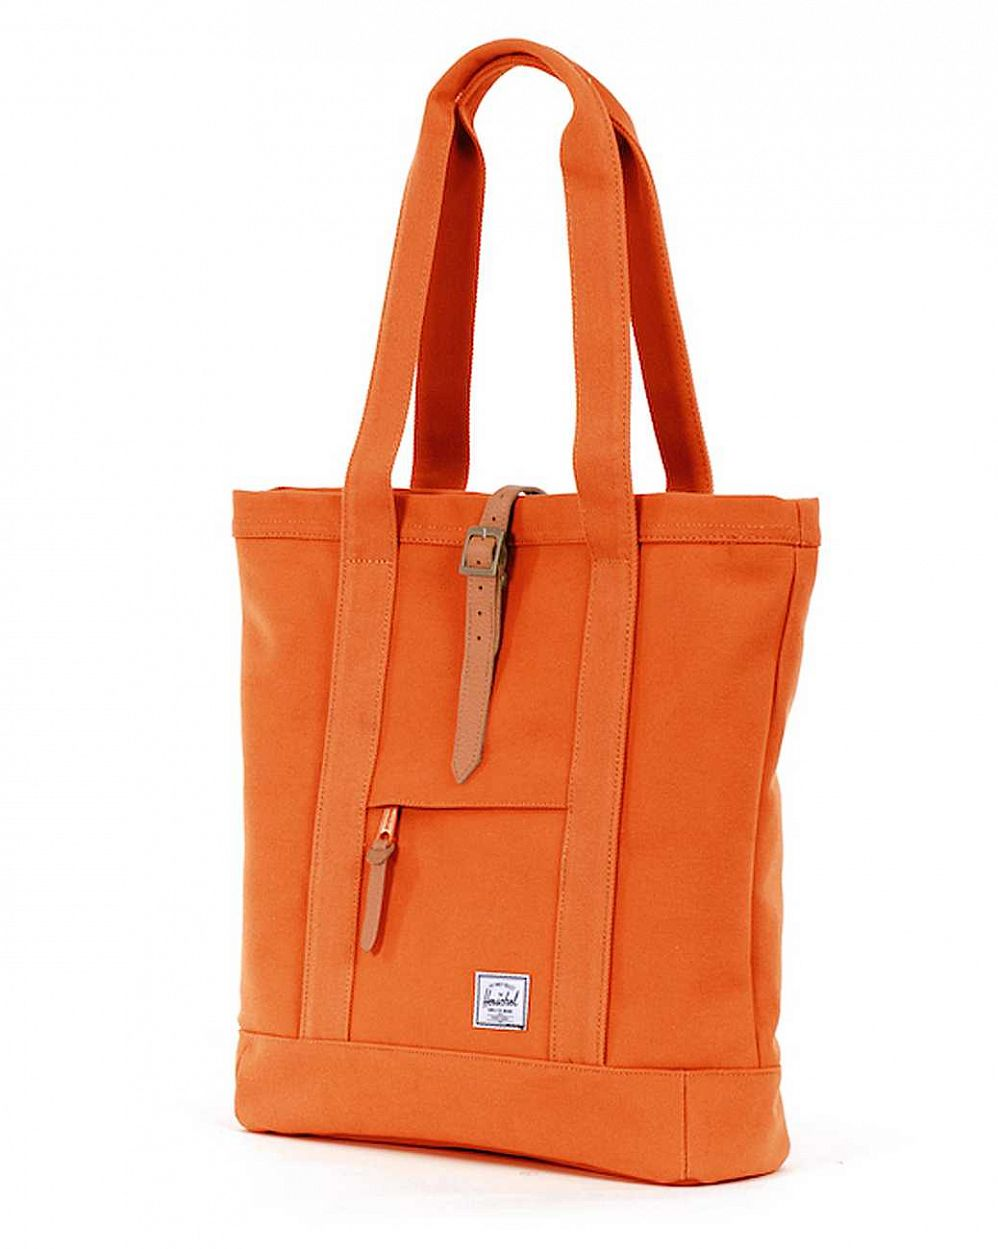 Сумка Herschel Market Canvas Burnt Orange интернет-магазин в Москве